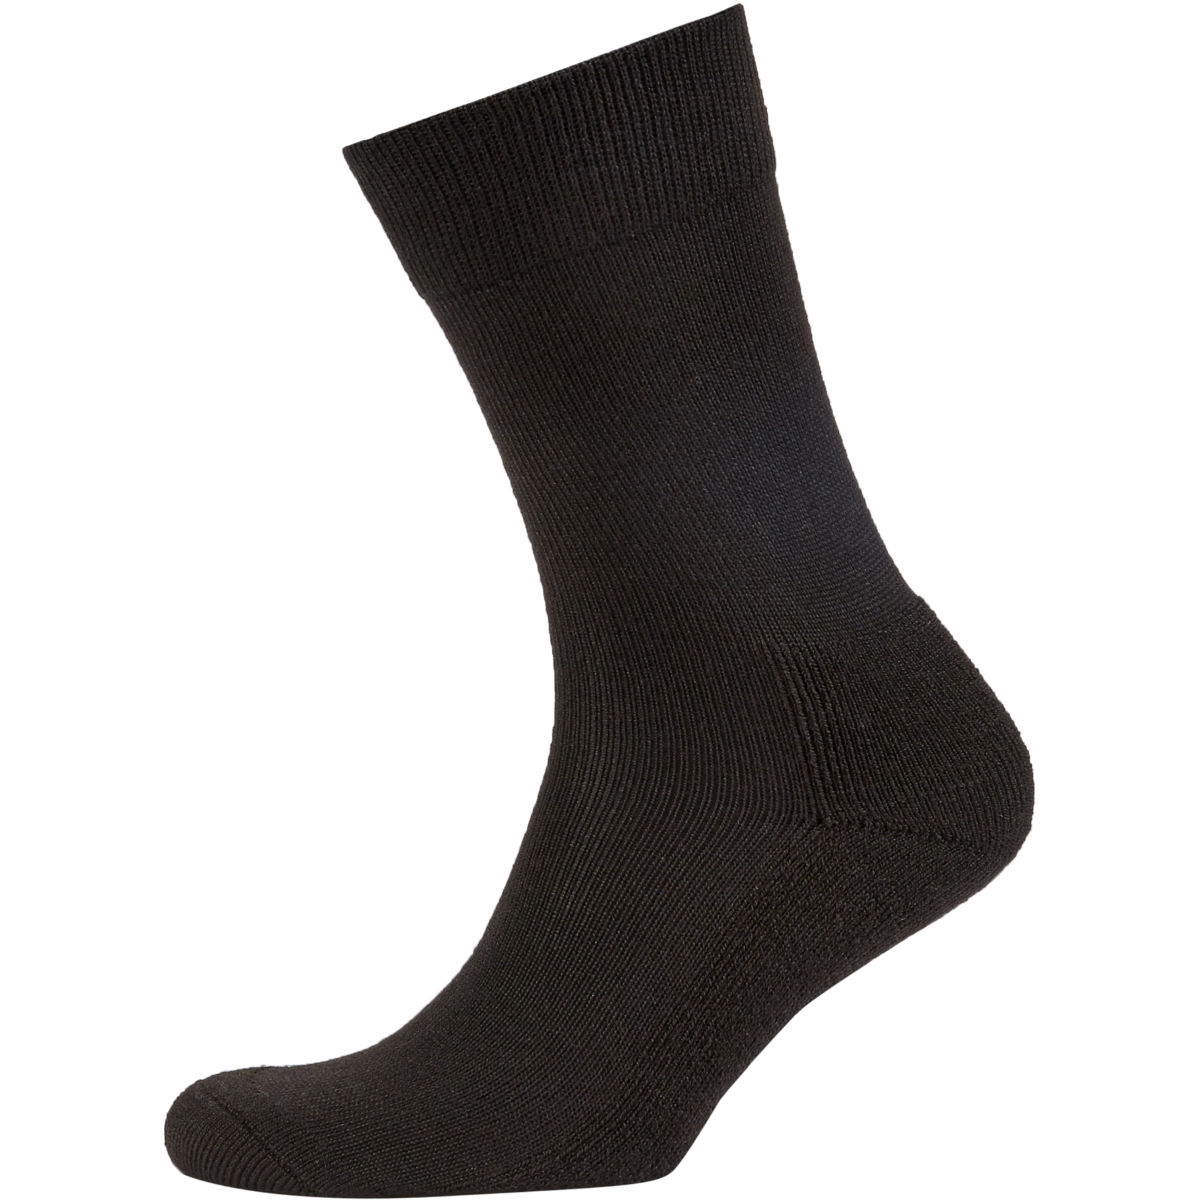 SealSkinz Thermal Liner  Socks   Socks